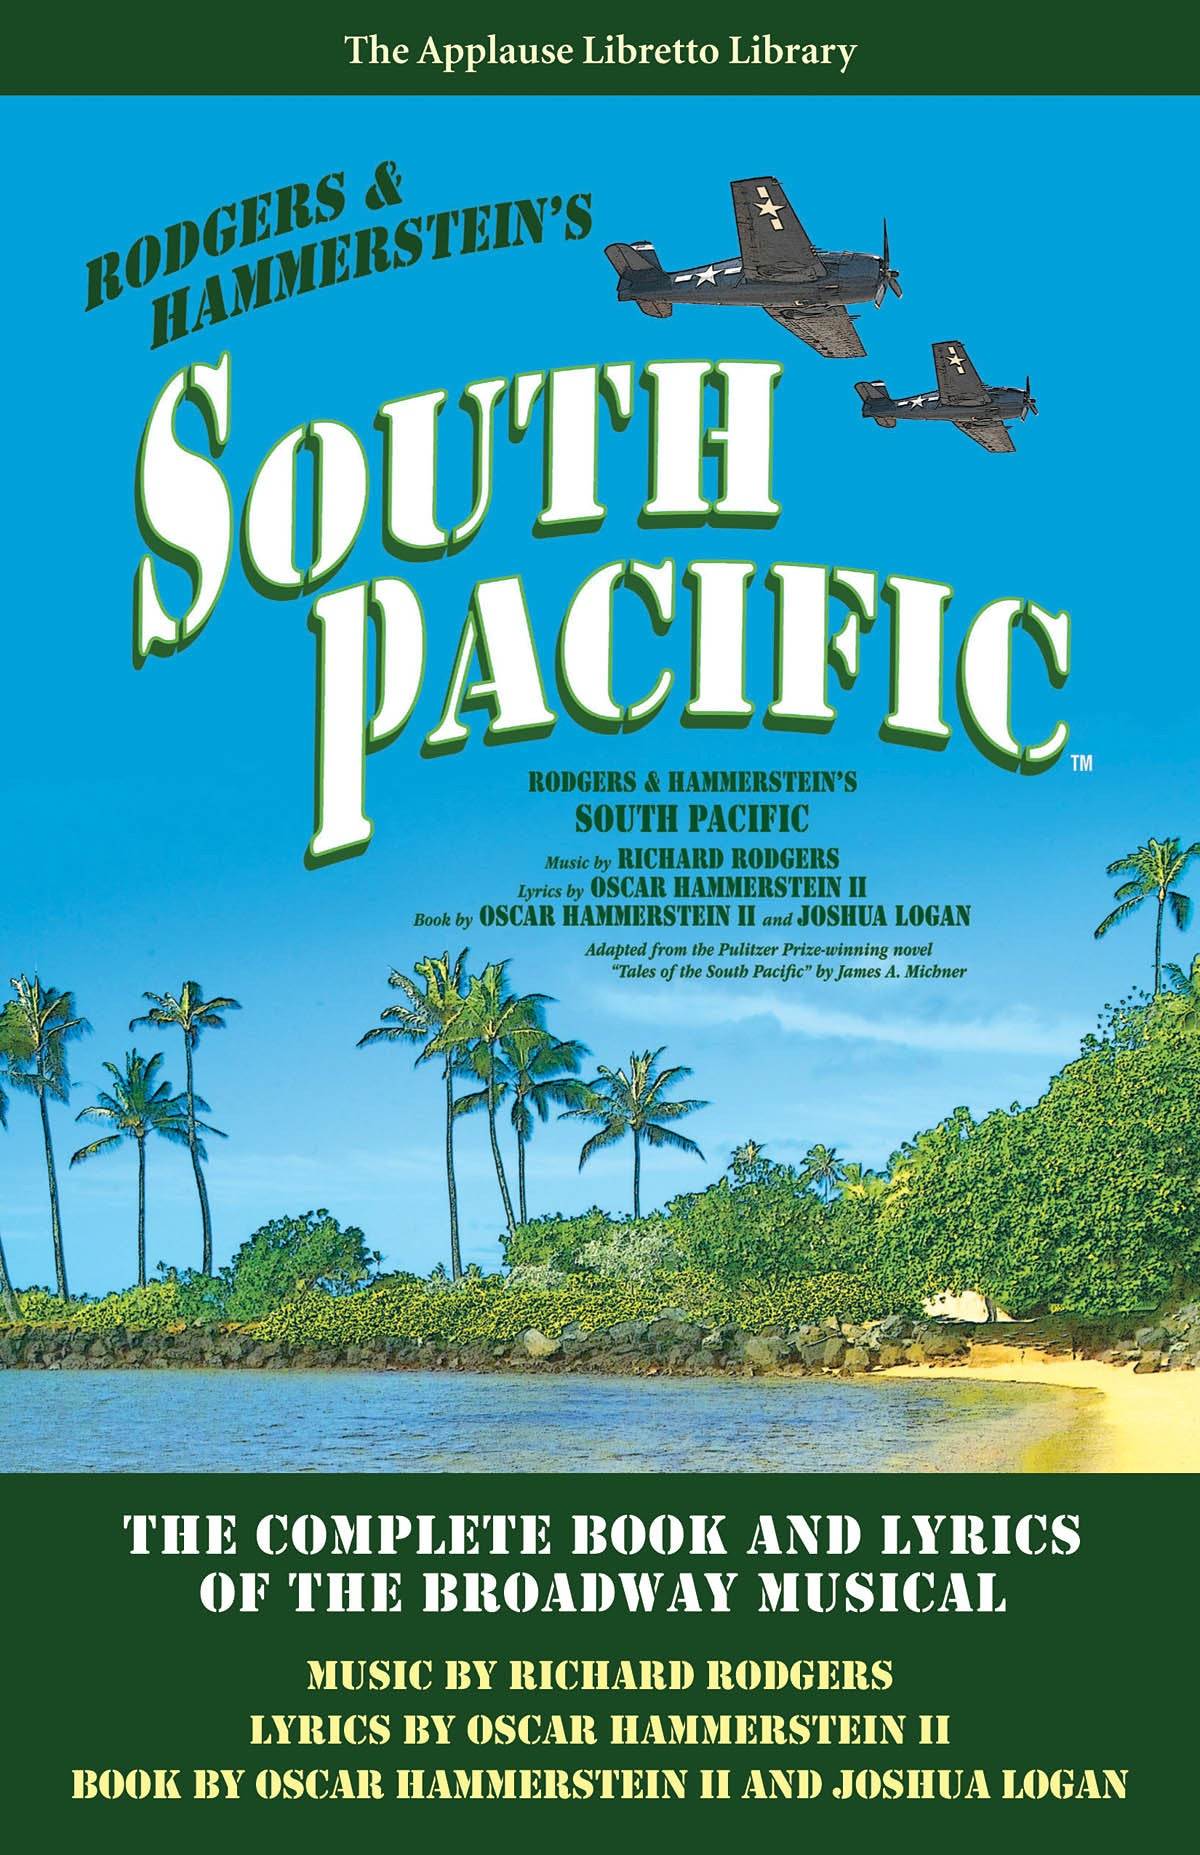 South Pacific Backwing - Tales of the south pacific